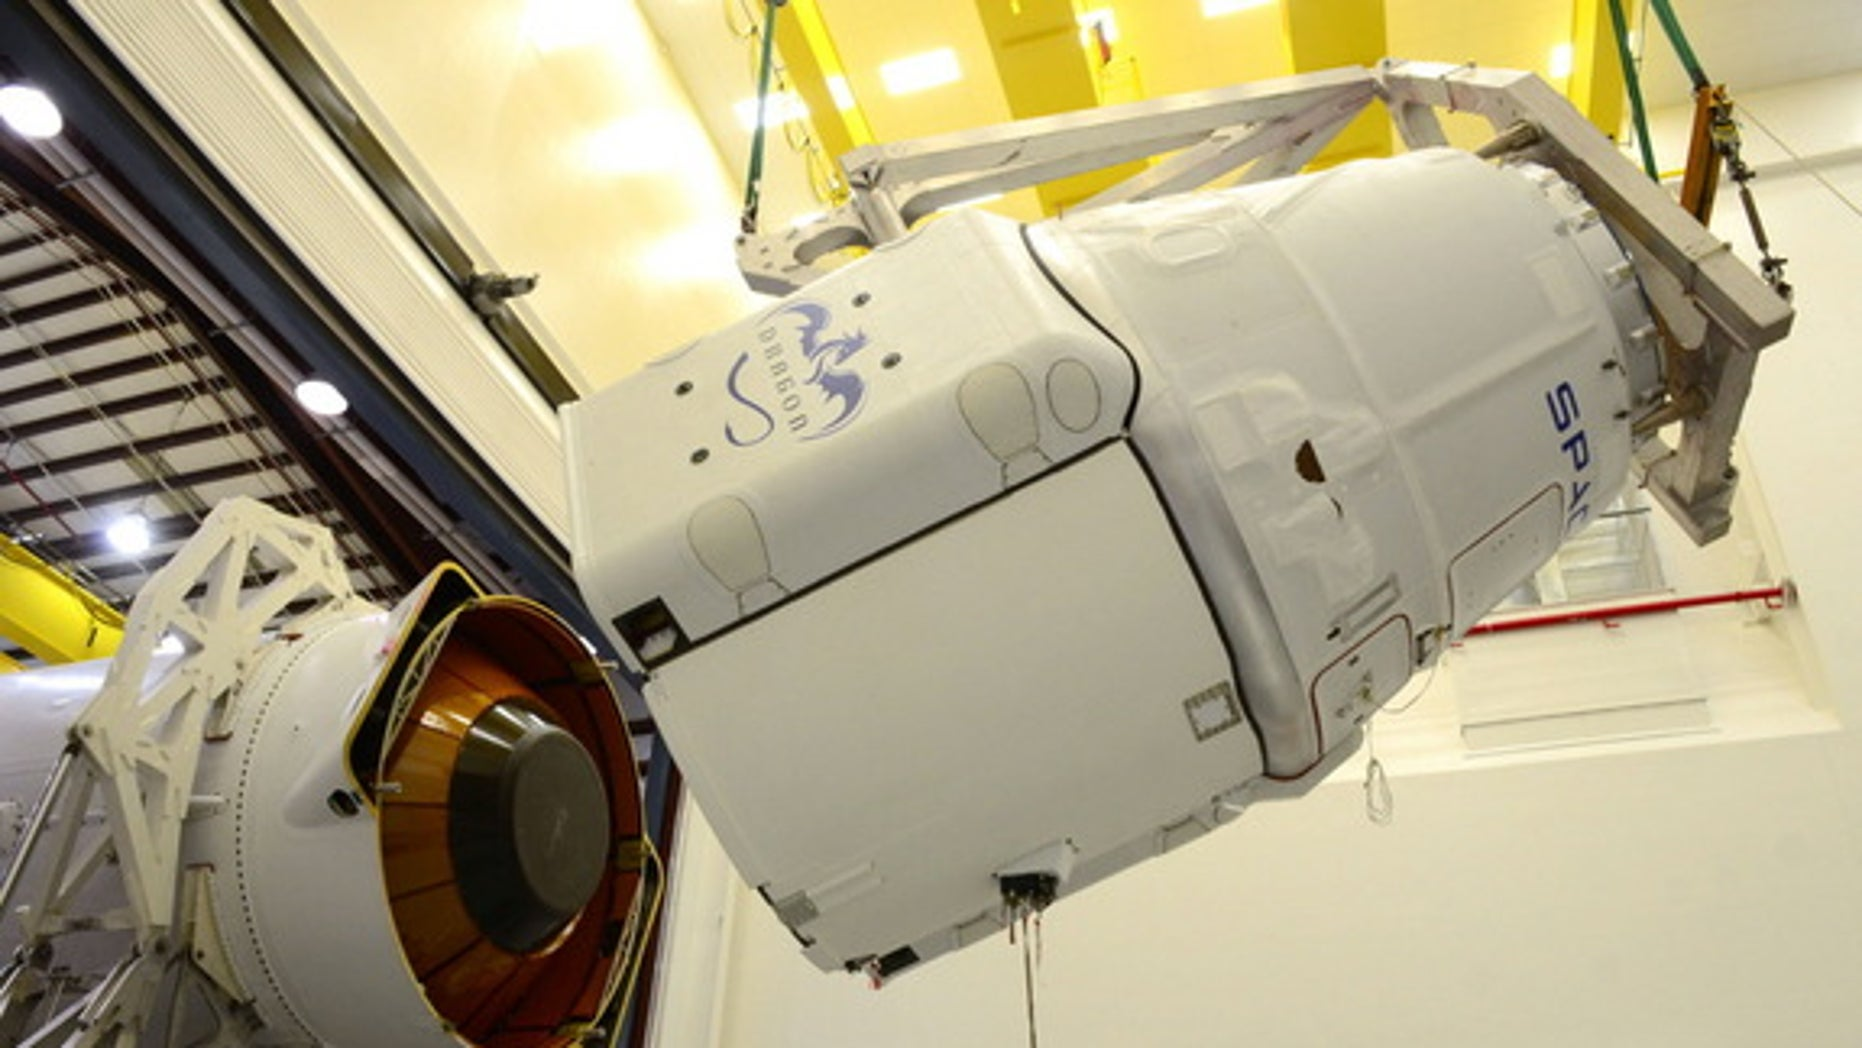 A SpaceX robotic Dragon space capsule is mated to the top of its Falcon 9 rocket ahead of a planned March 2014 launch to the International Space Station from Cape Canaveral Air Force Station, Florida. Image released March 11.